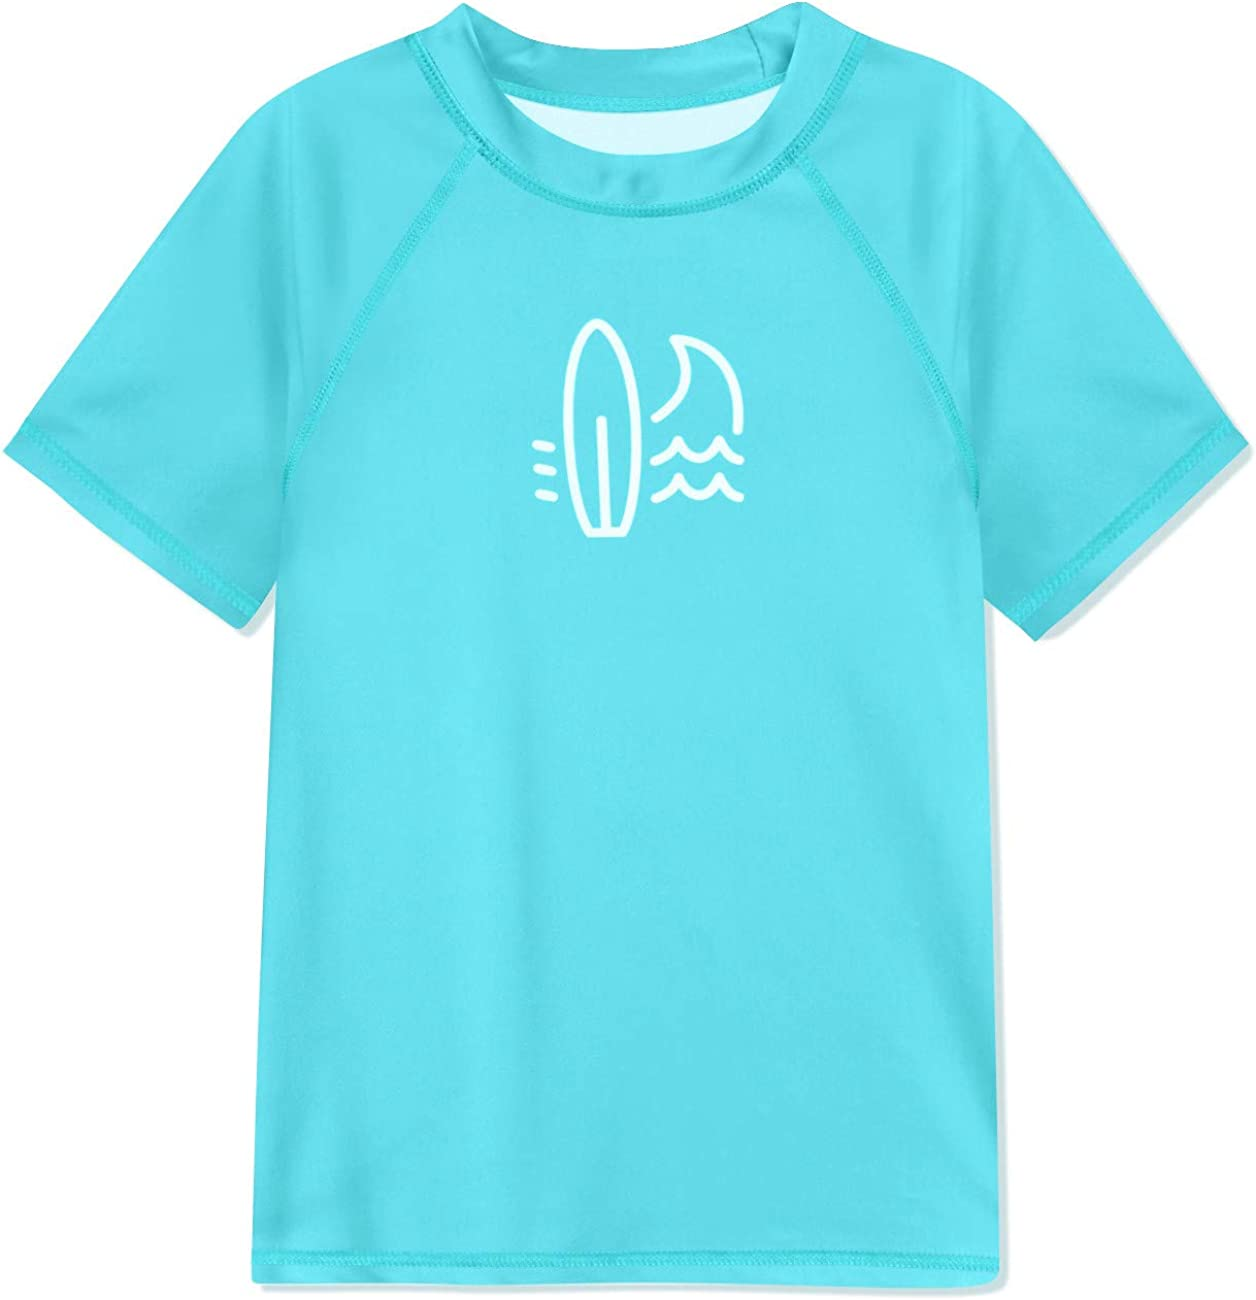 BesserBay Boy's UPF 50+ Sun Protection S Guard Short Ranking TOP10 Rash Clearance SALE! Limited time! Sleeve